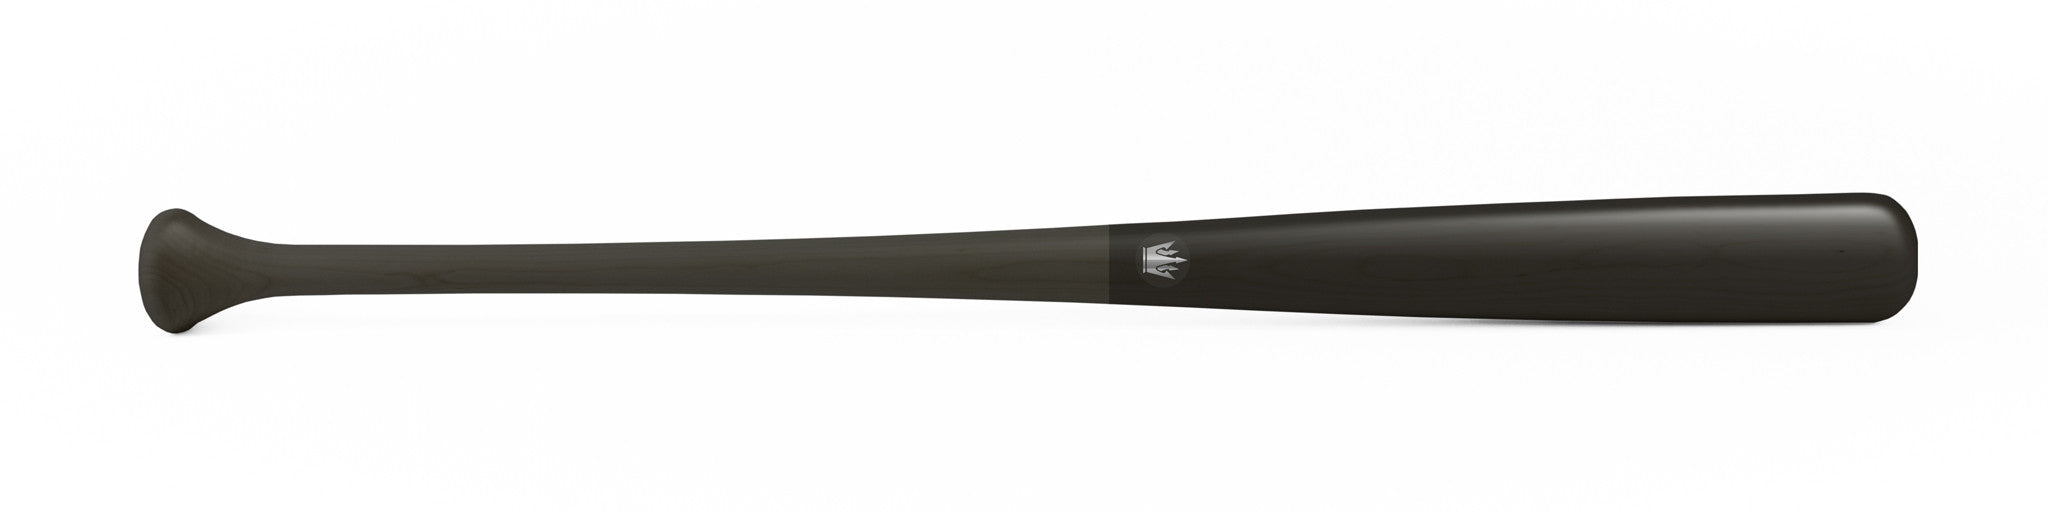 Wood bat - Maple model 280 Black Knight - 8